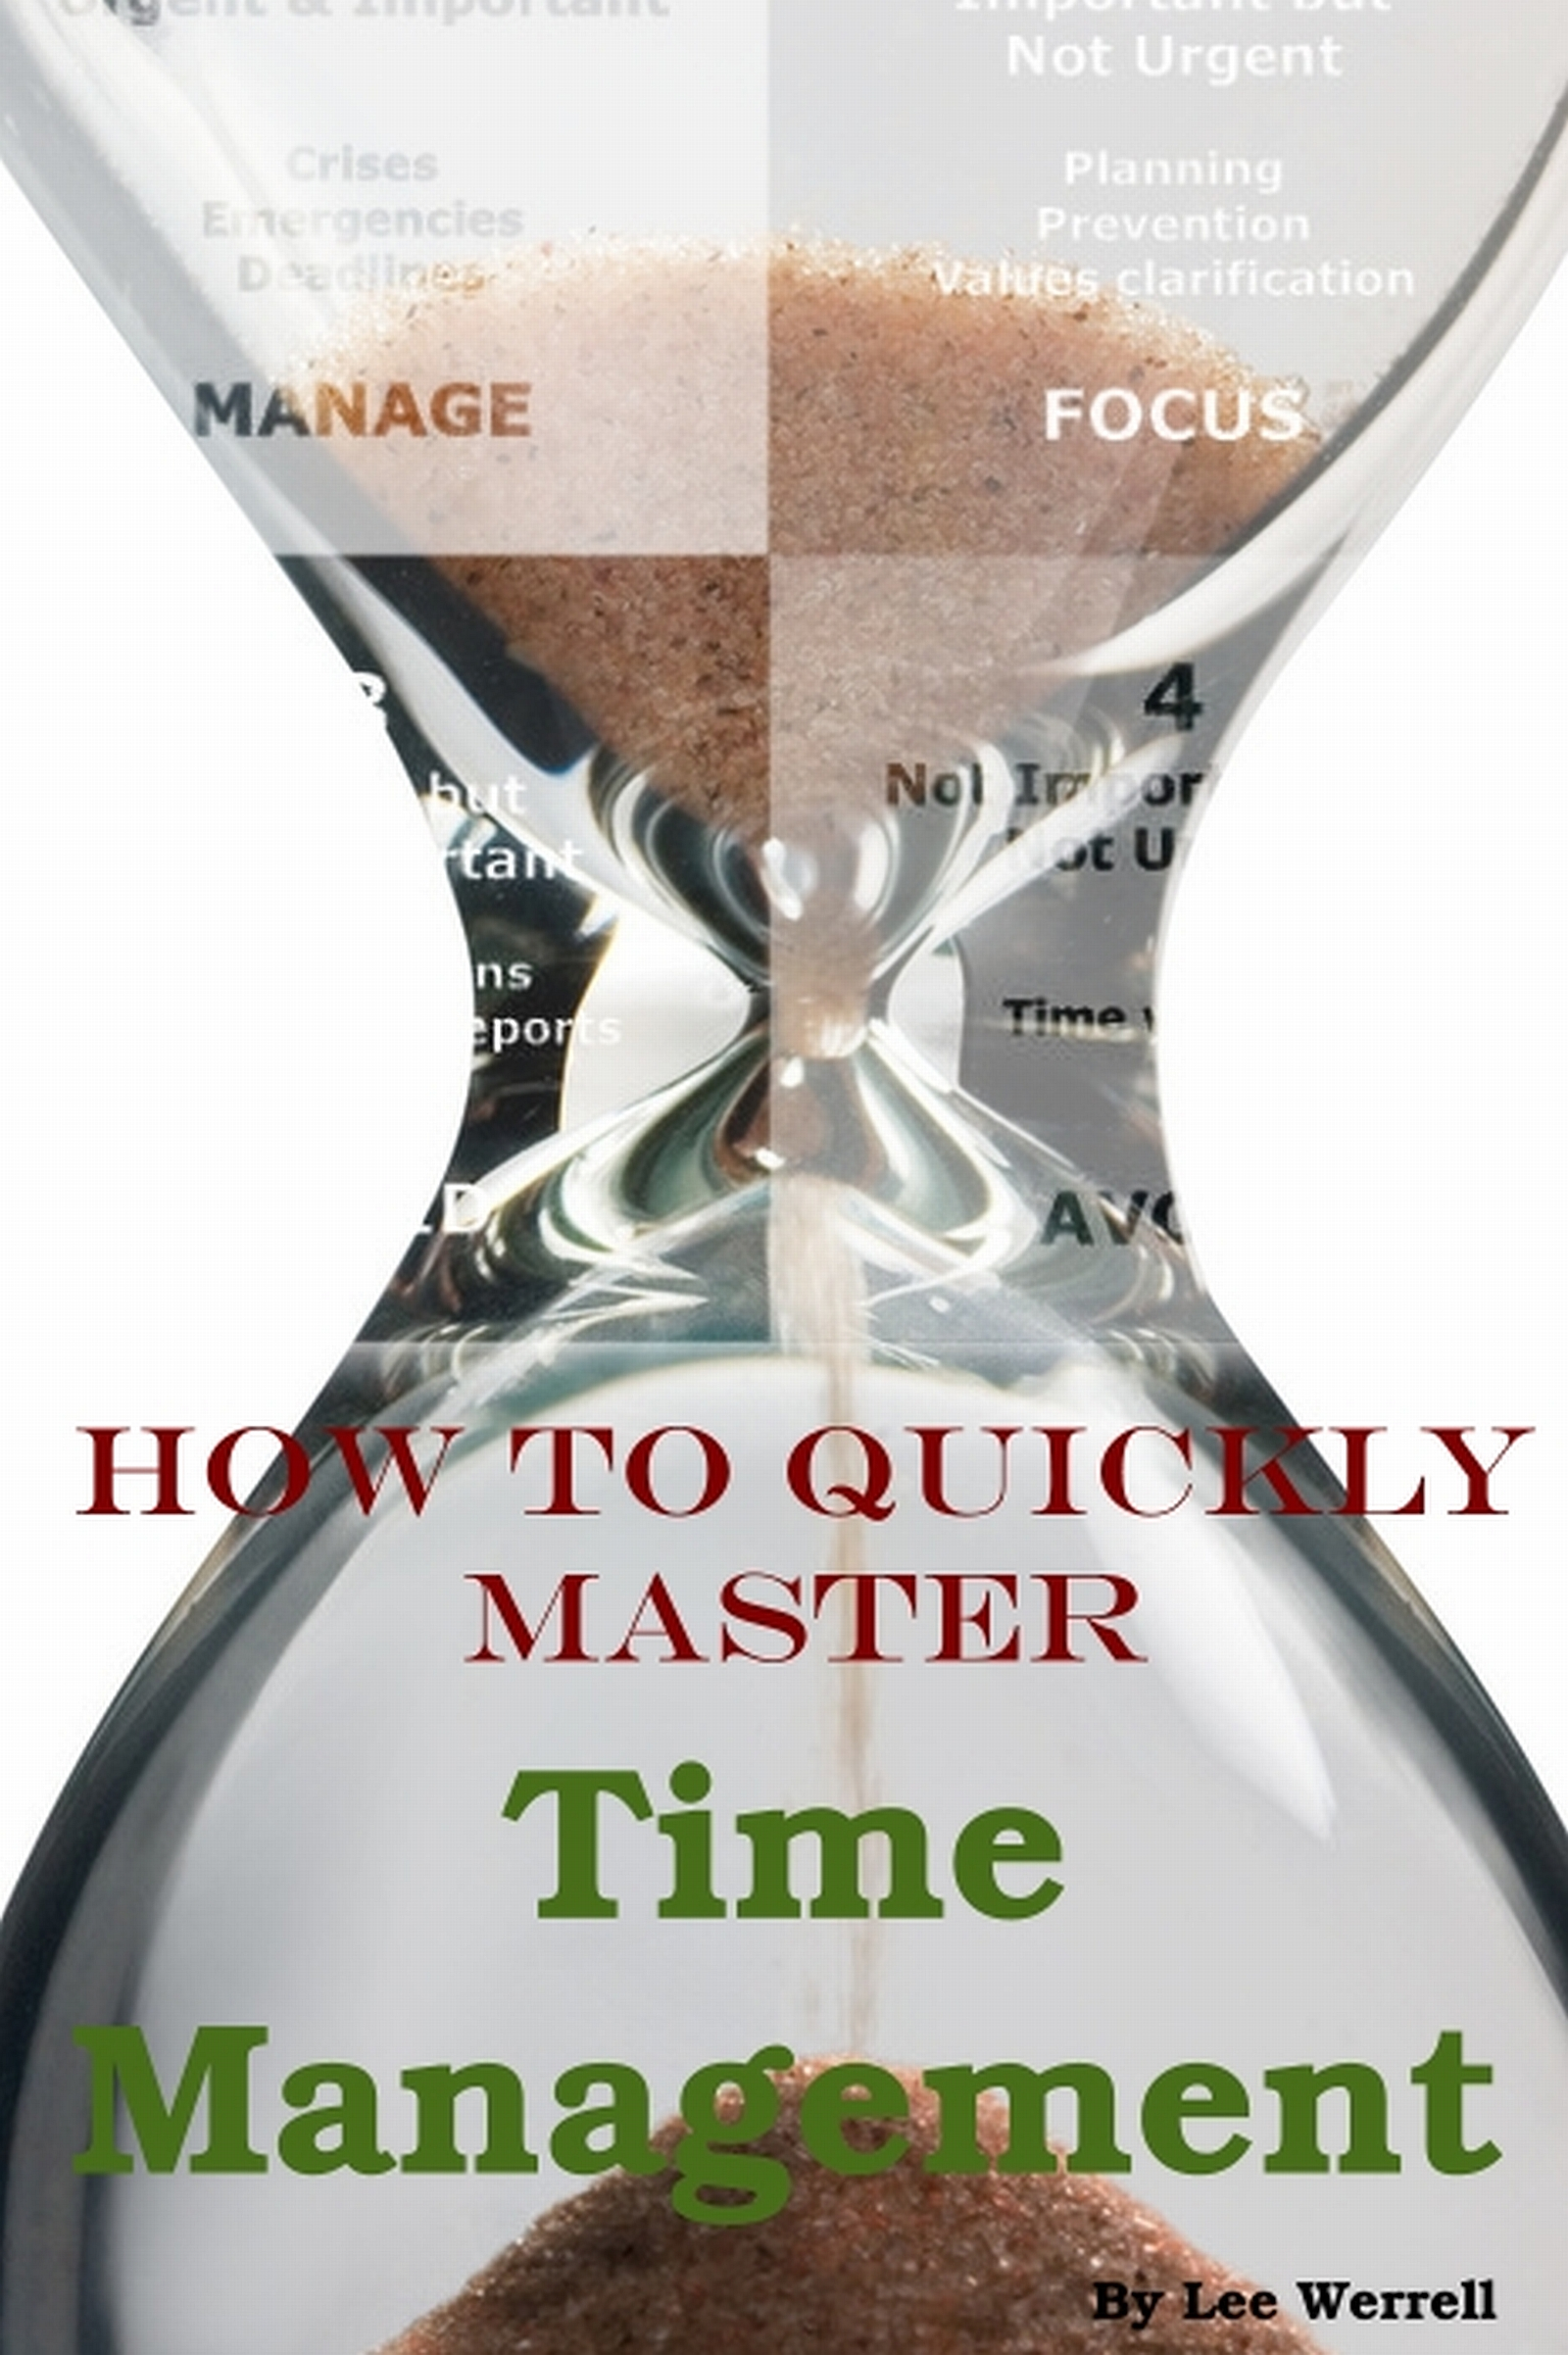 Lee Werrell - Quickly Master Time Management